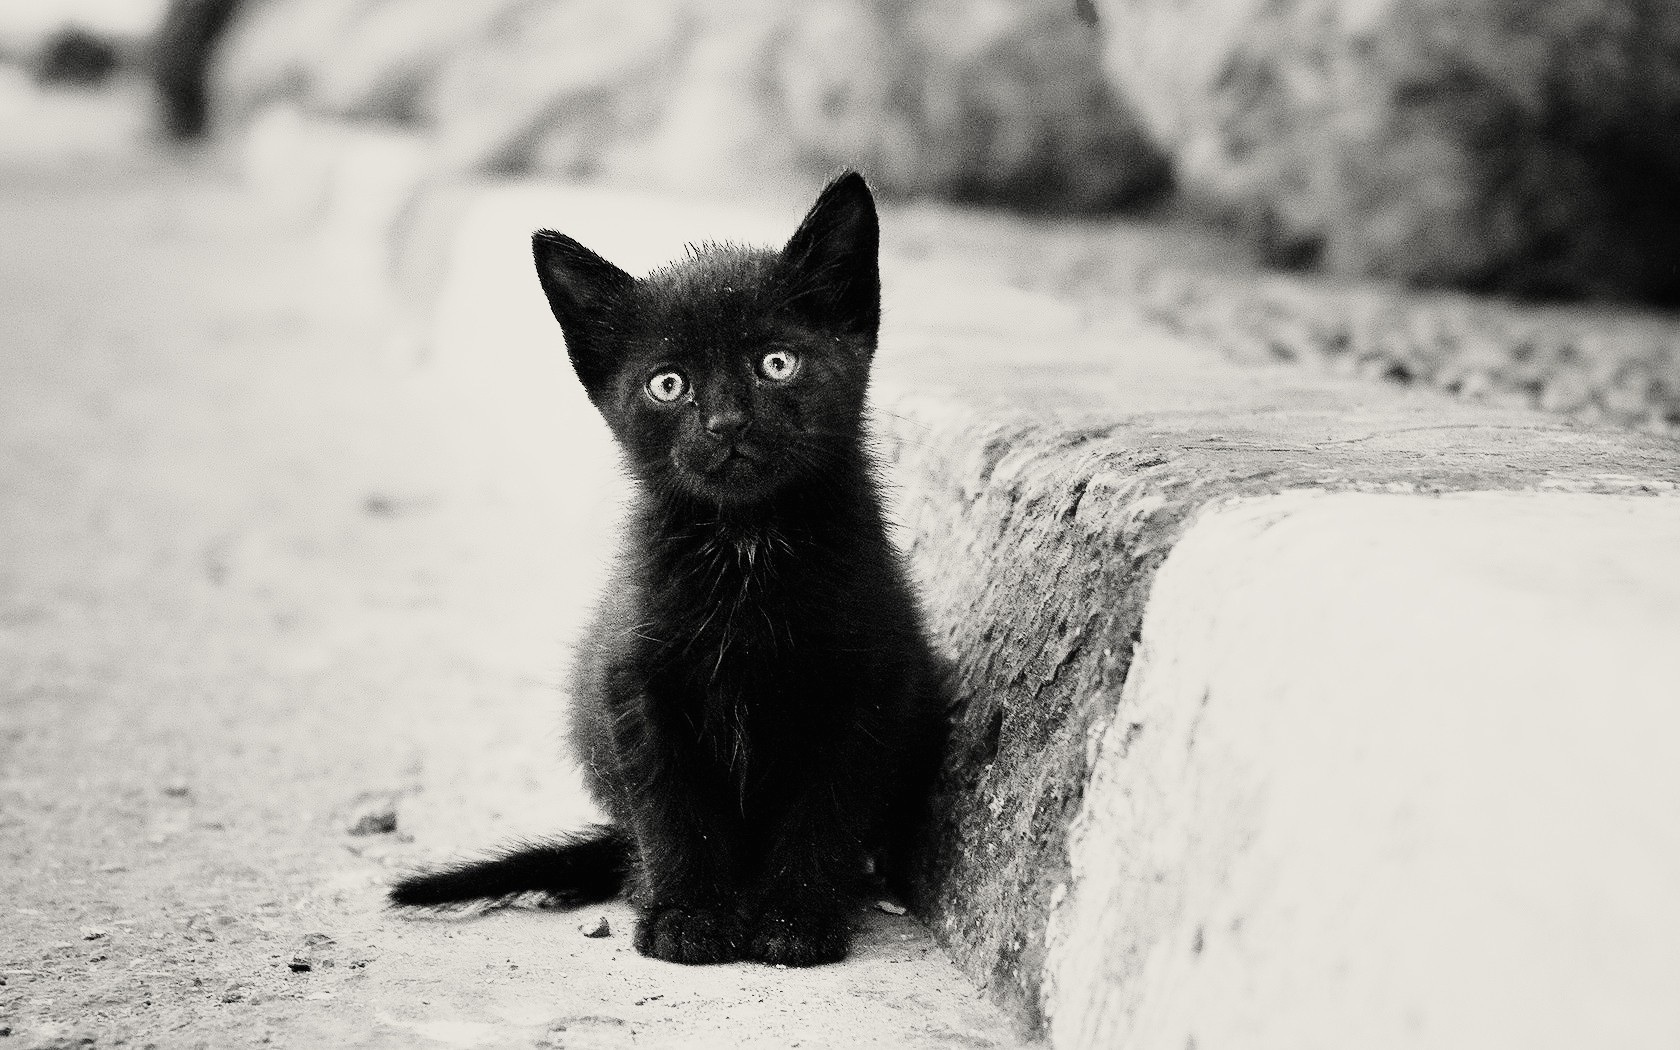 Free Download 1680x1050 Lonely Black Kitten Desktop Pc And Mac Wallpaper 1680x1050 For Your Desktop Mobile Tablet Explore 45 Black Kitten Wallpaper Cute Kitten Pictures Wallpaper Kitten Wallpaper Black